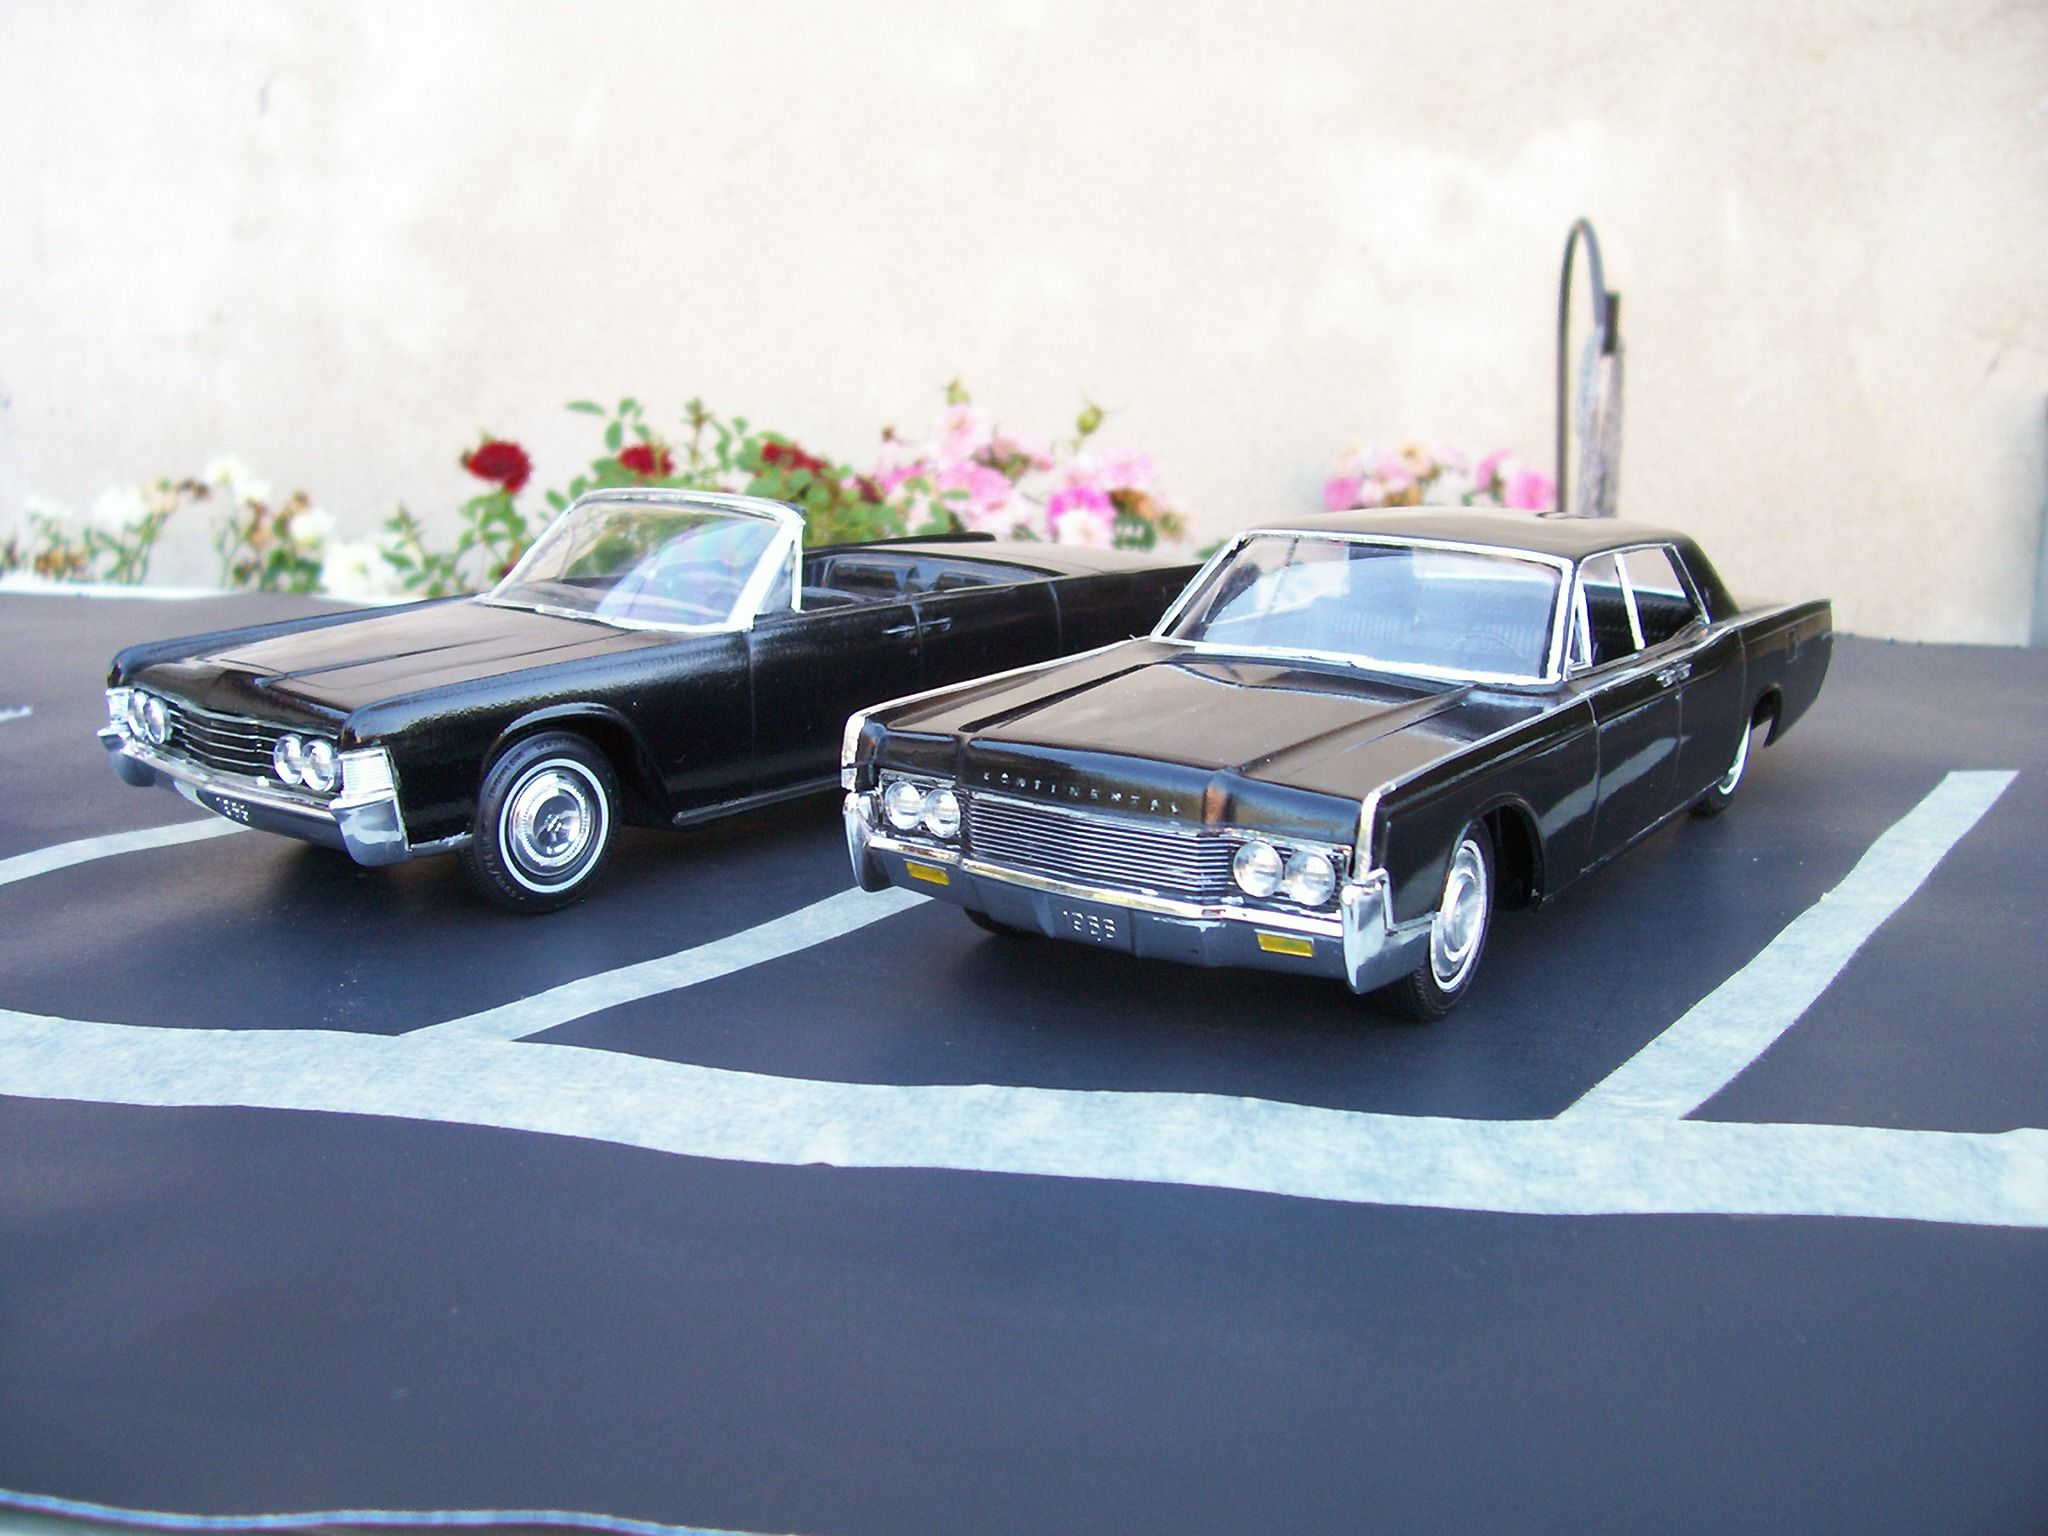 1965 & 1966 Lincoln Continental 1/25 scale model cars.